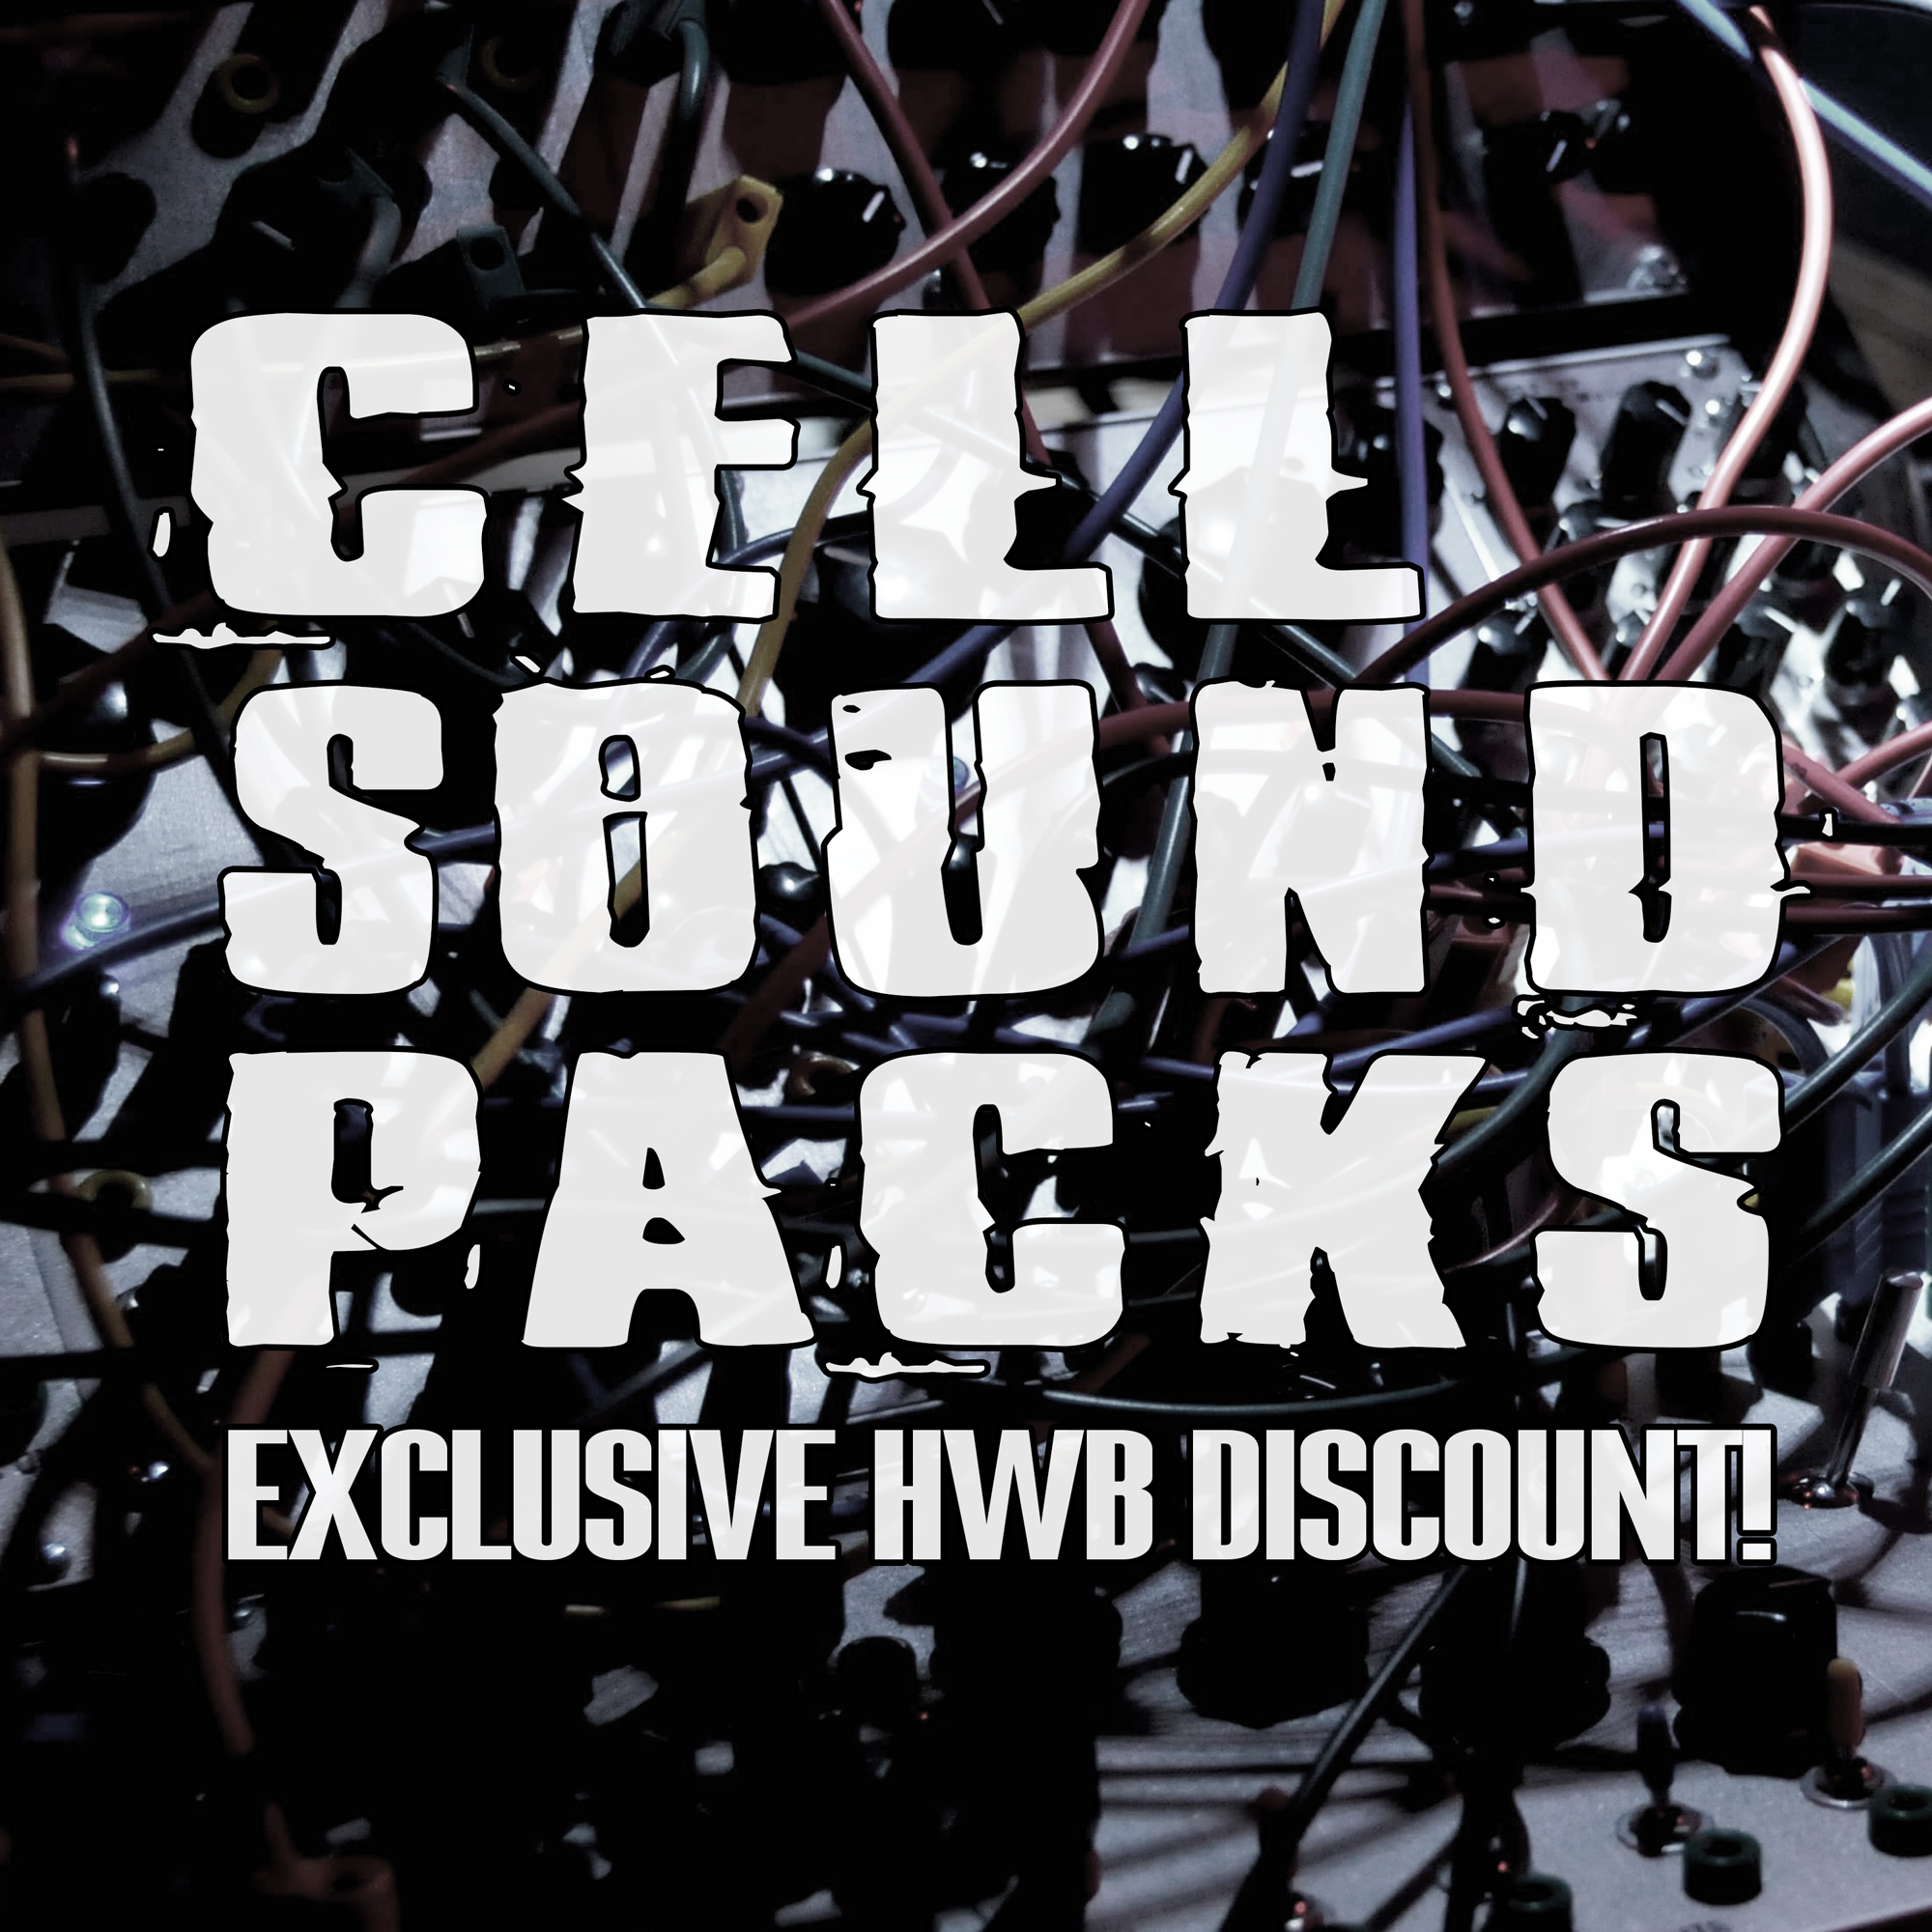 Heavyweight Bass Members Exclusive Discount Code For The Cell Studios Amazing Sample Packs